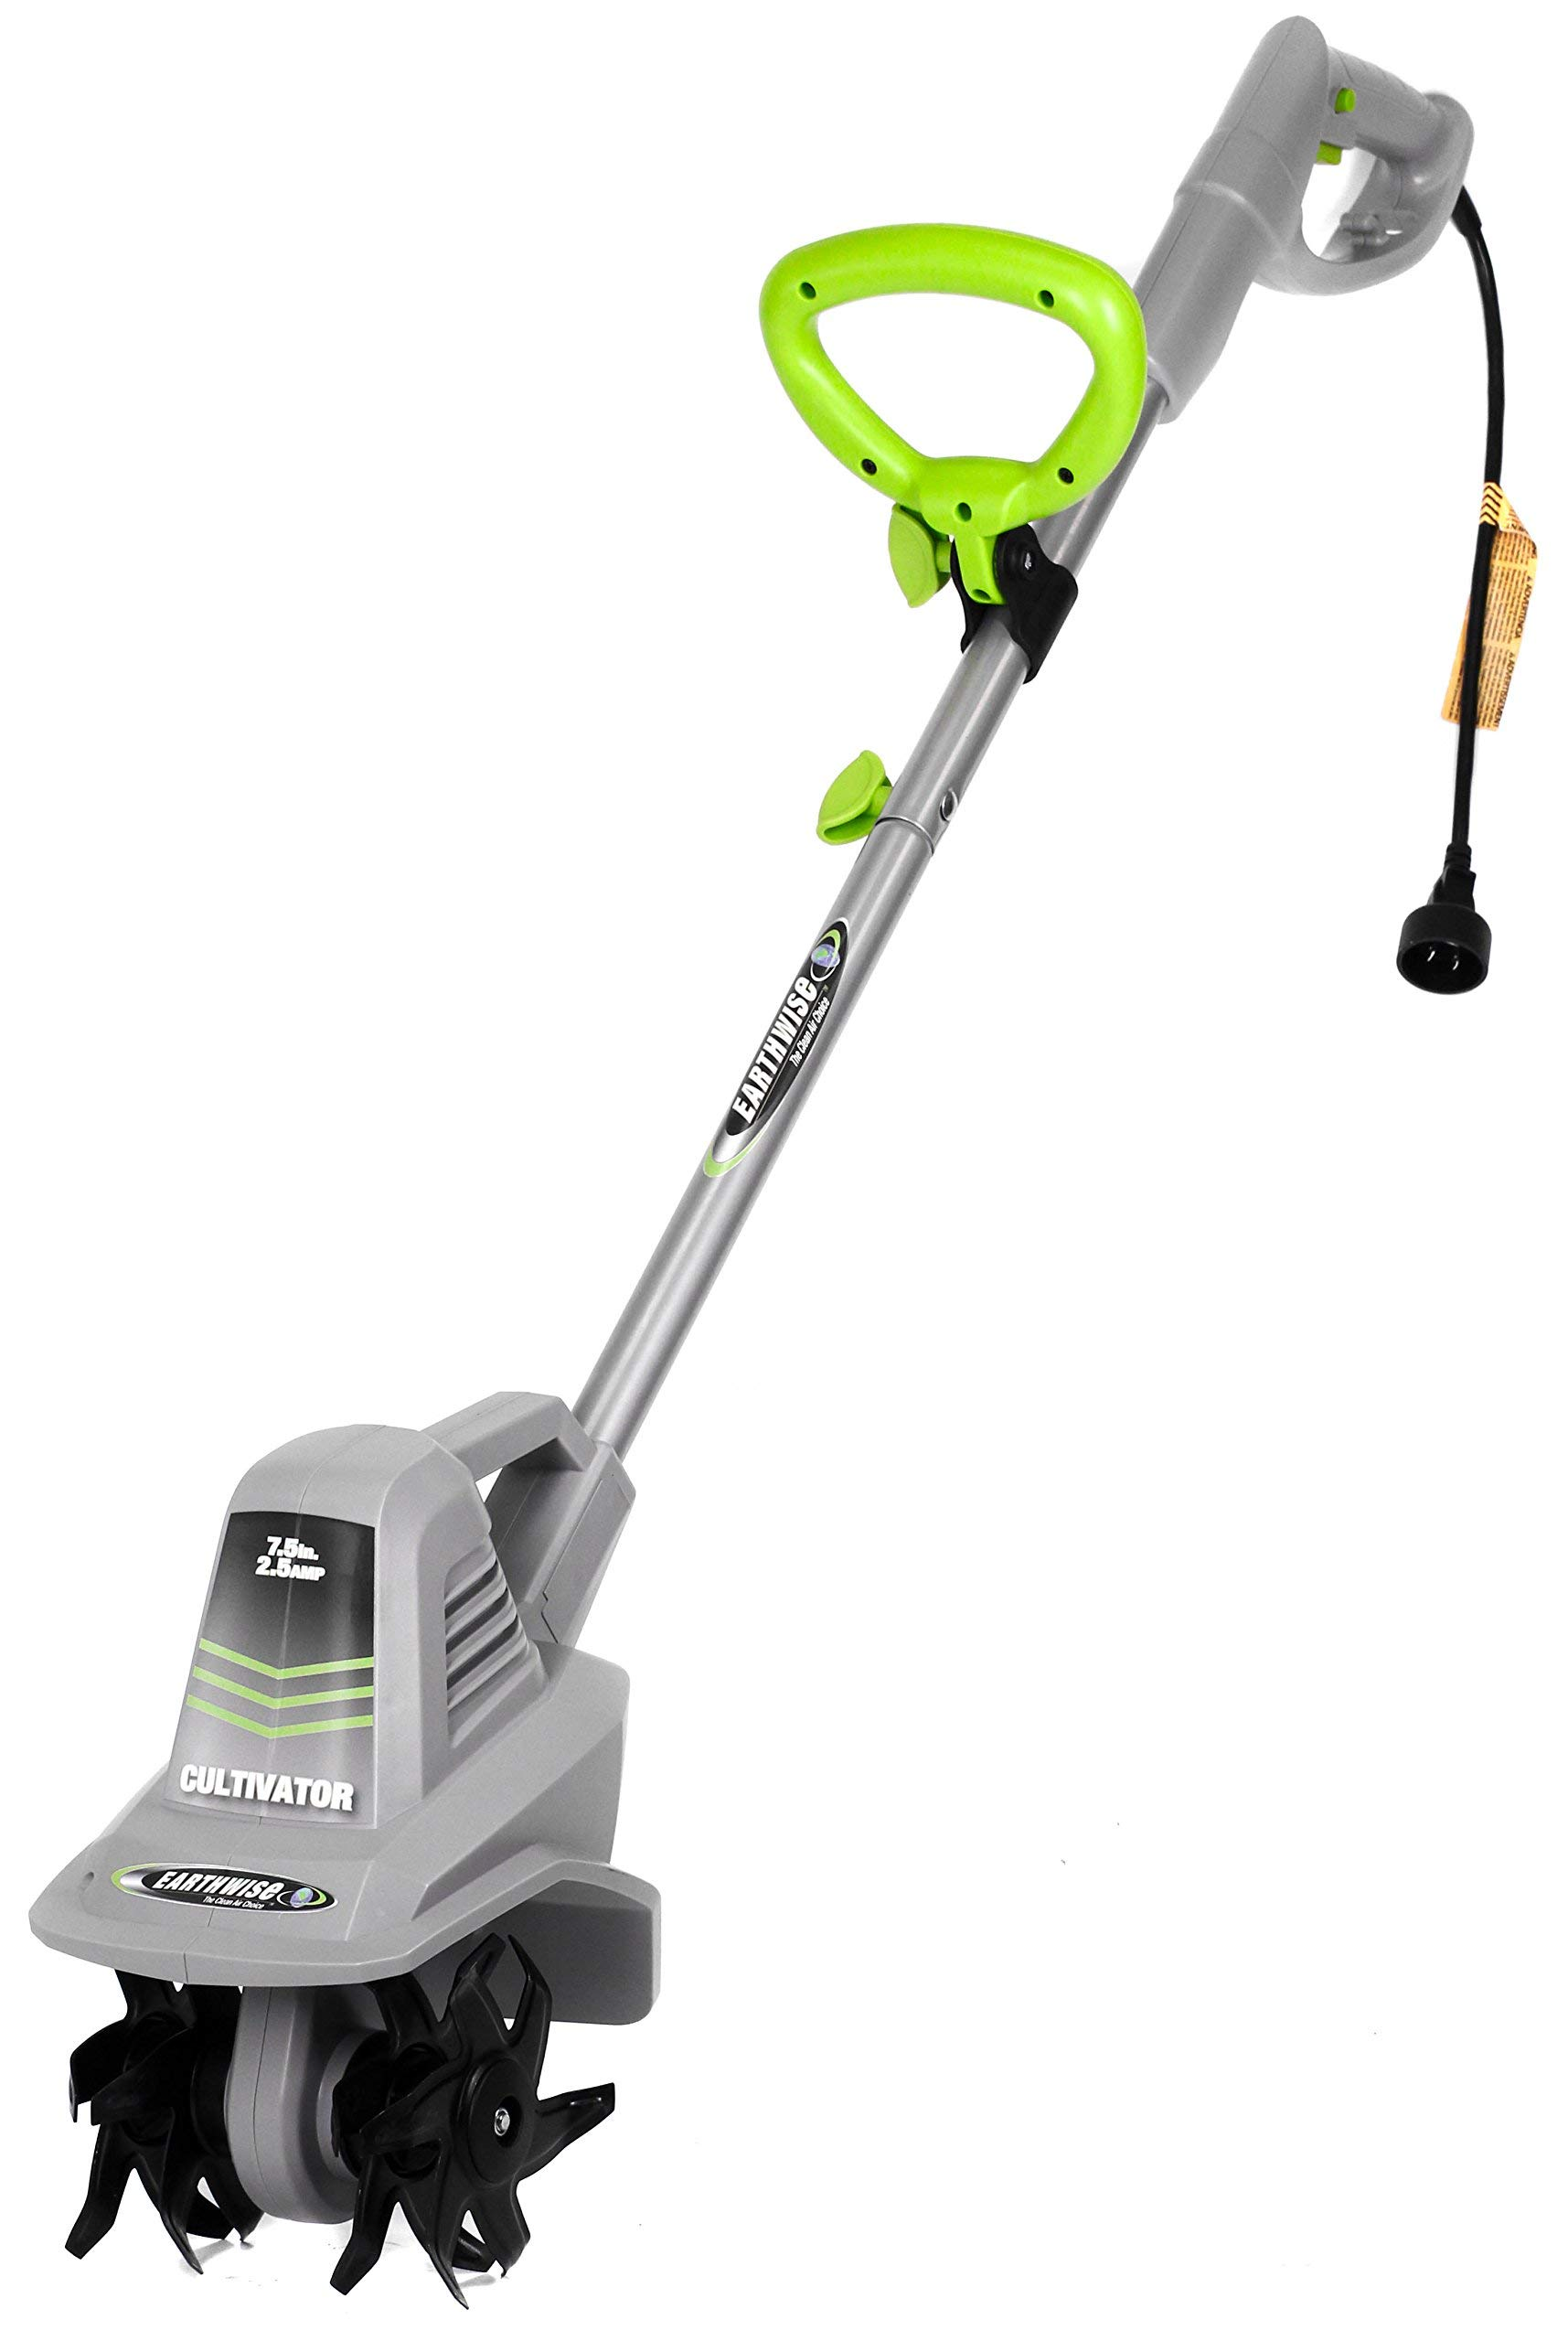 Earthwise TC70025 7.5-Inch 2.5-Amp Corded Electric Tiller/Cultivator (Renewed) by Earthwise